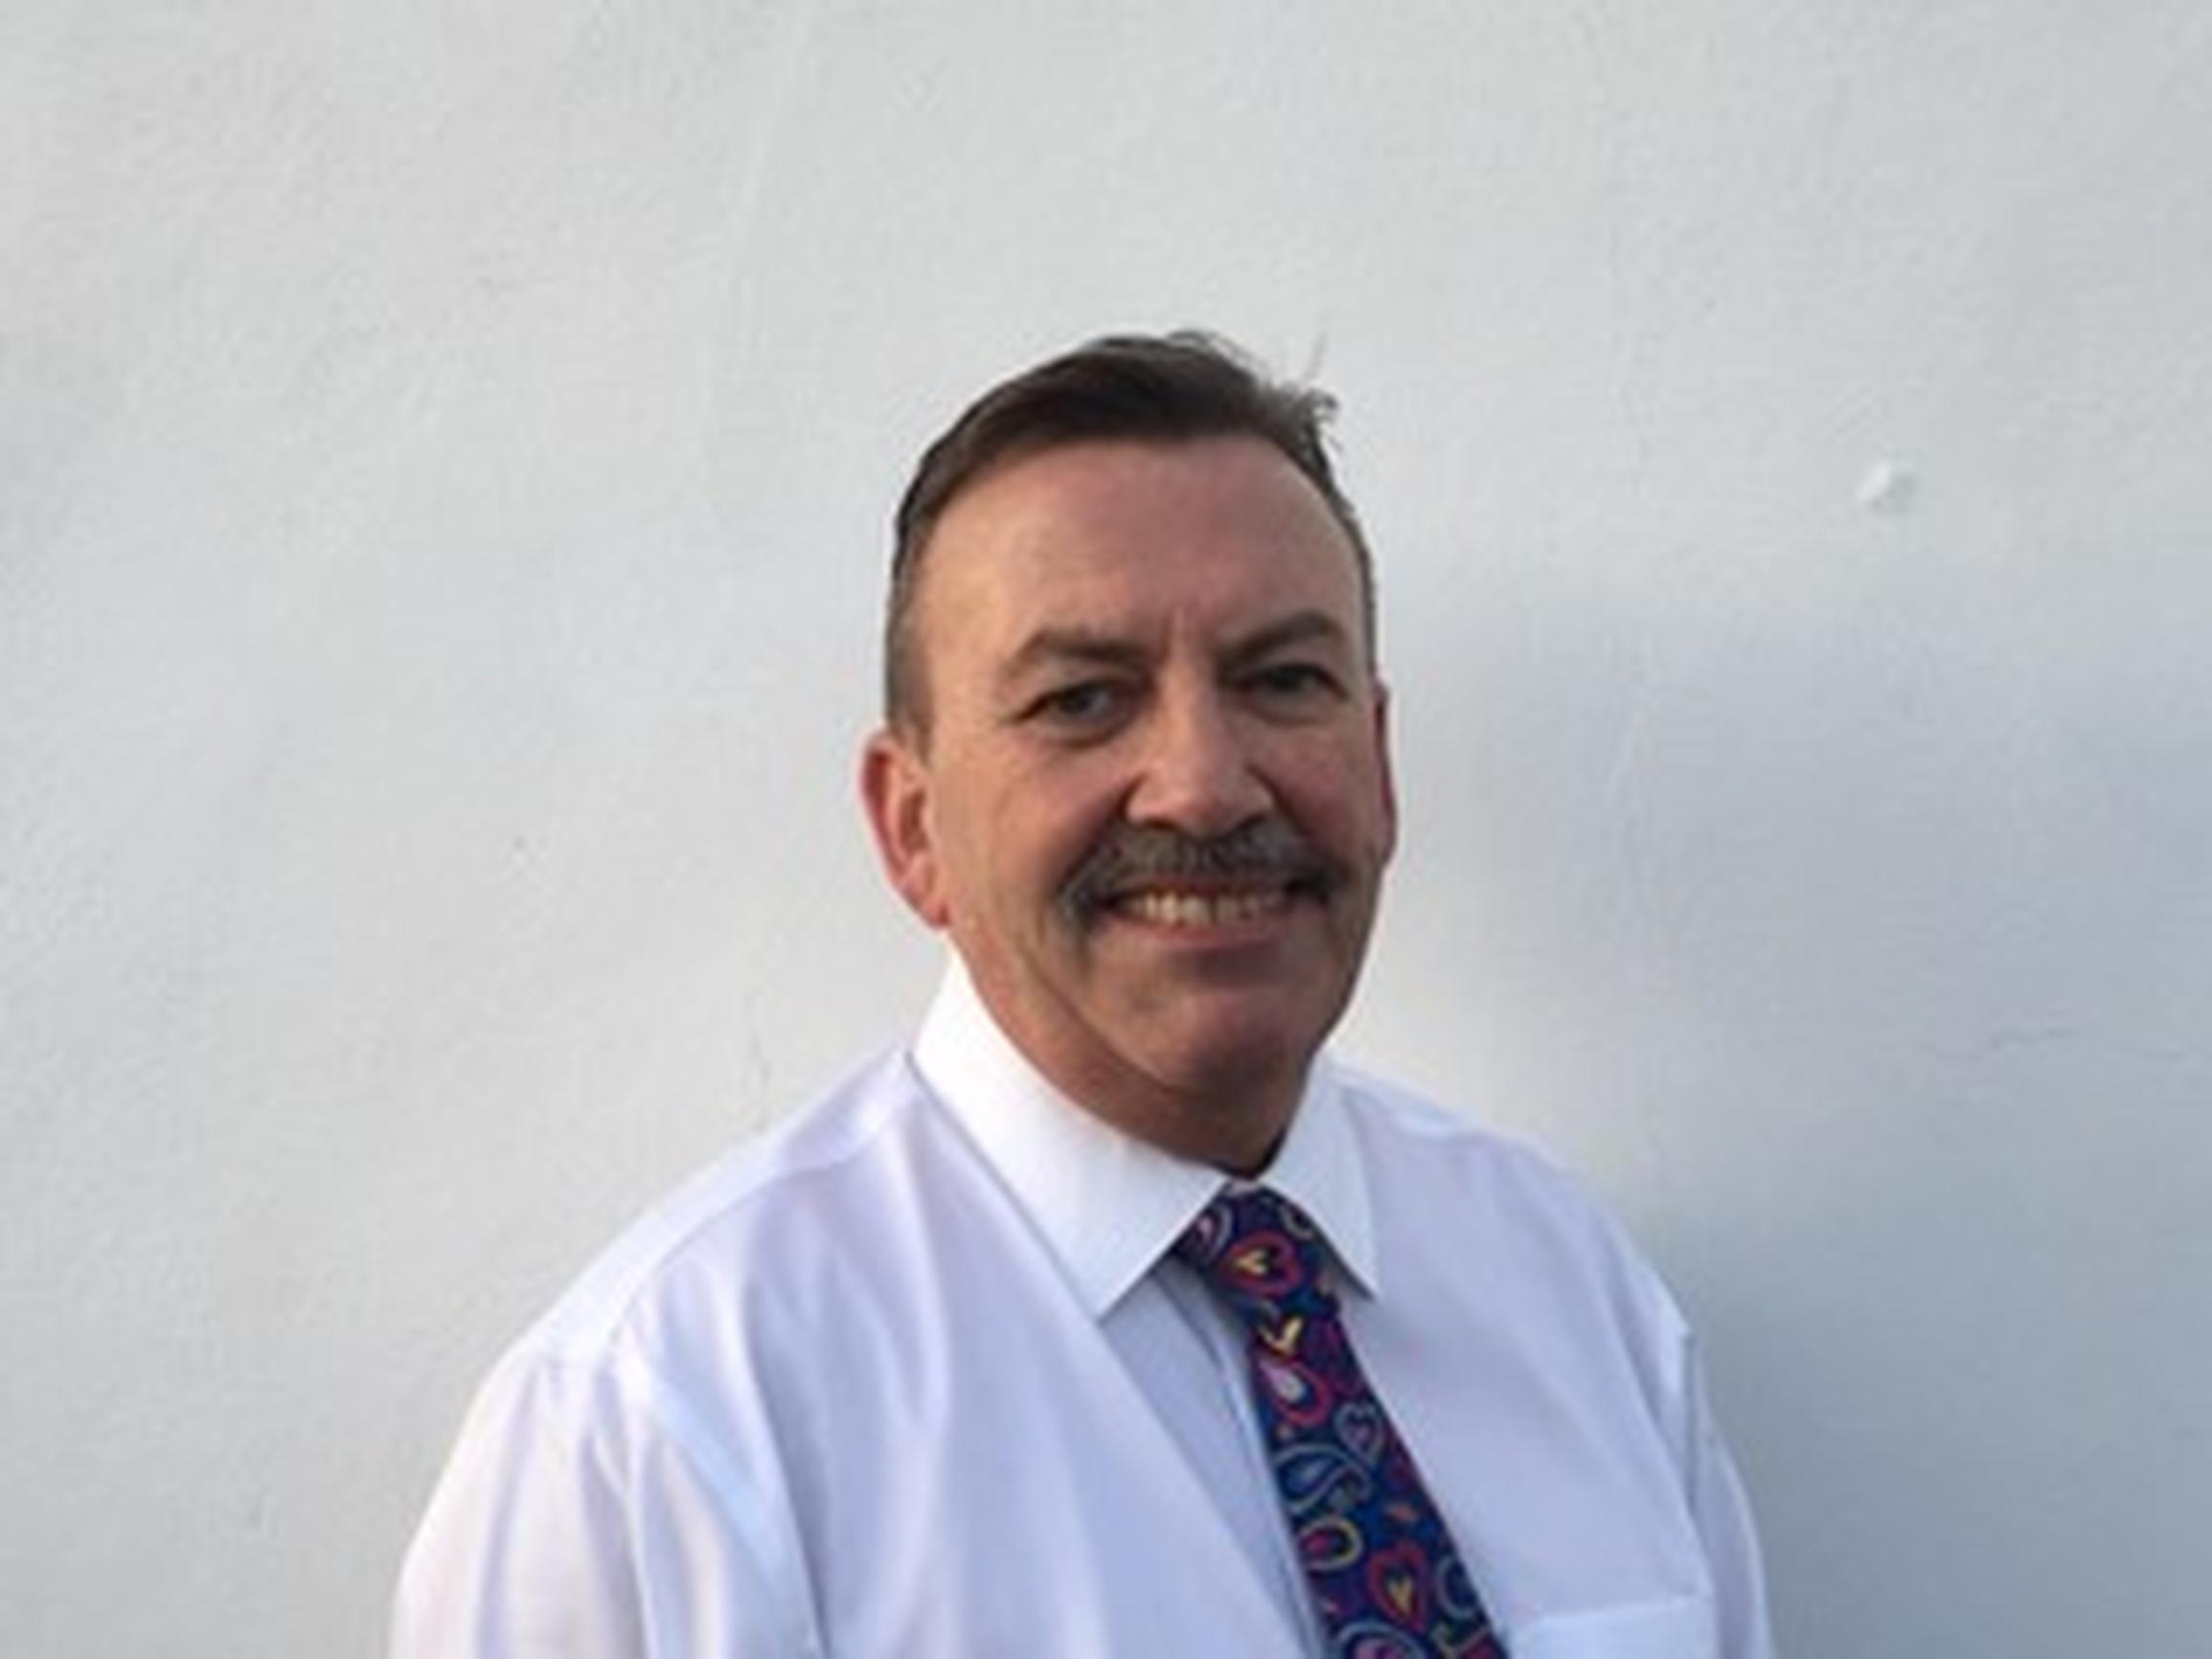 Sharpe becomes managing director of Newlyn